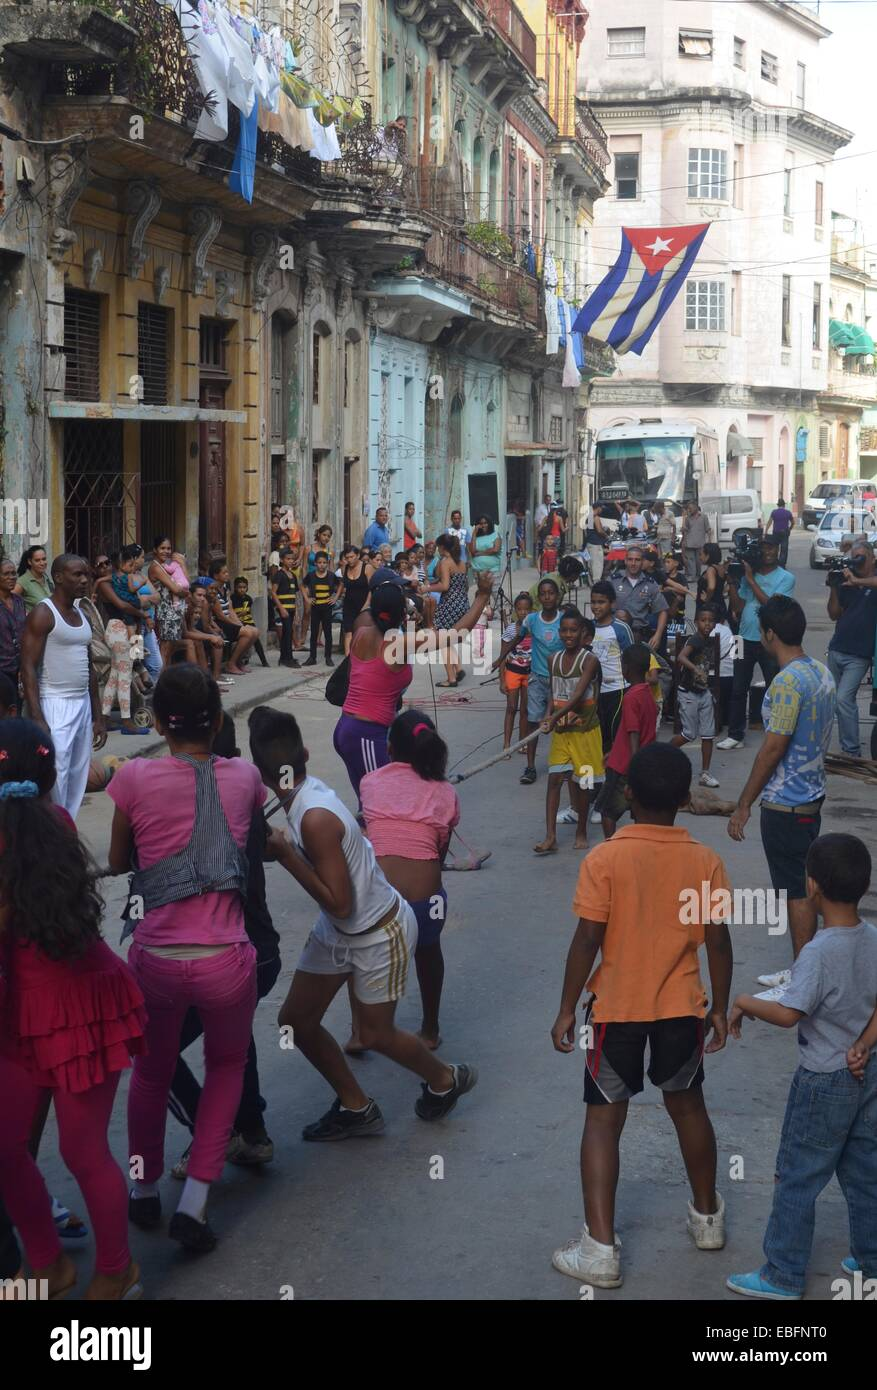 Cuban children taking part in a school sports day, on the streets of Habana Centro. Havana, Cuba - Stock Image